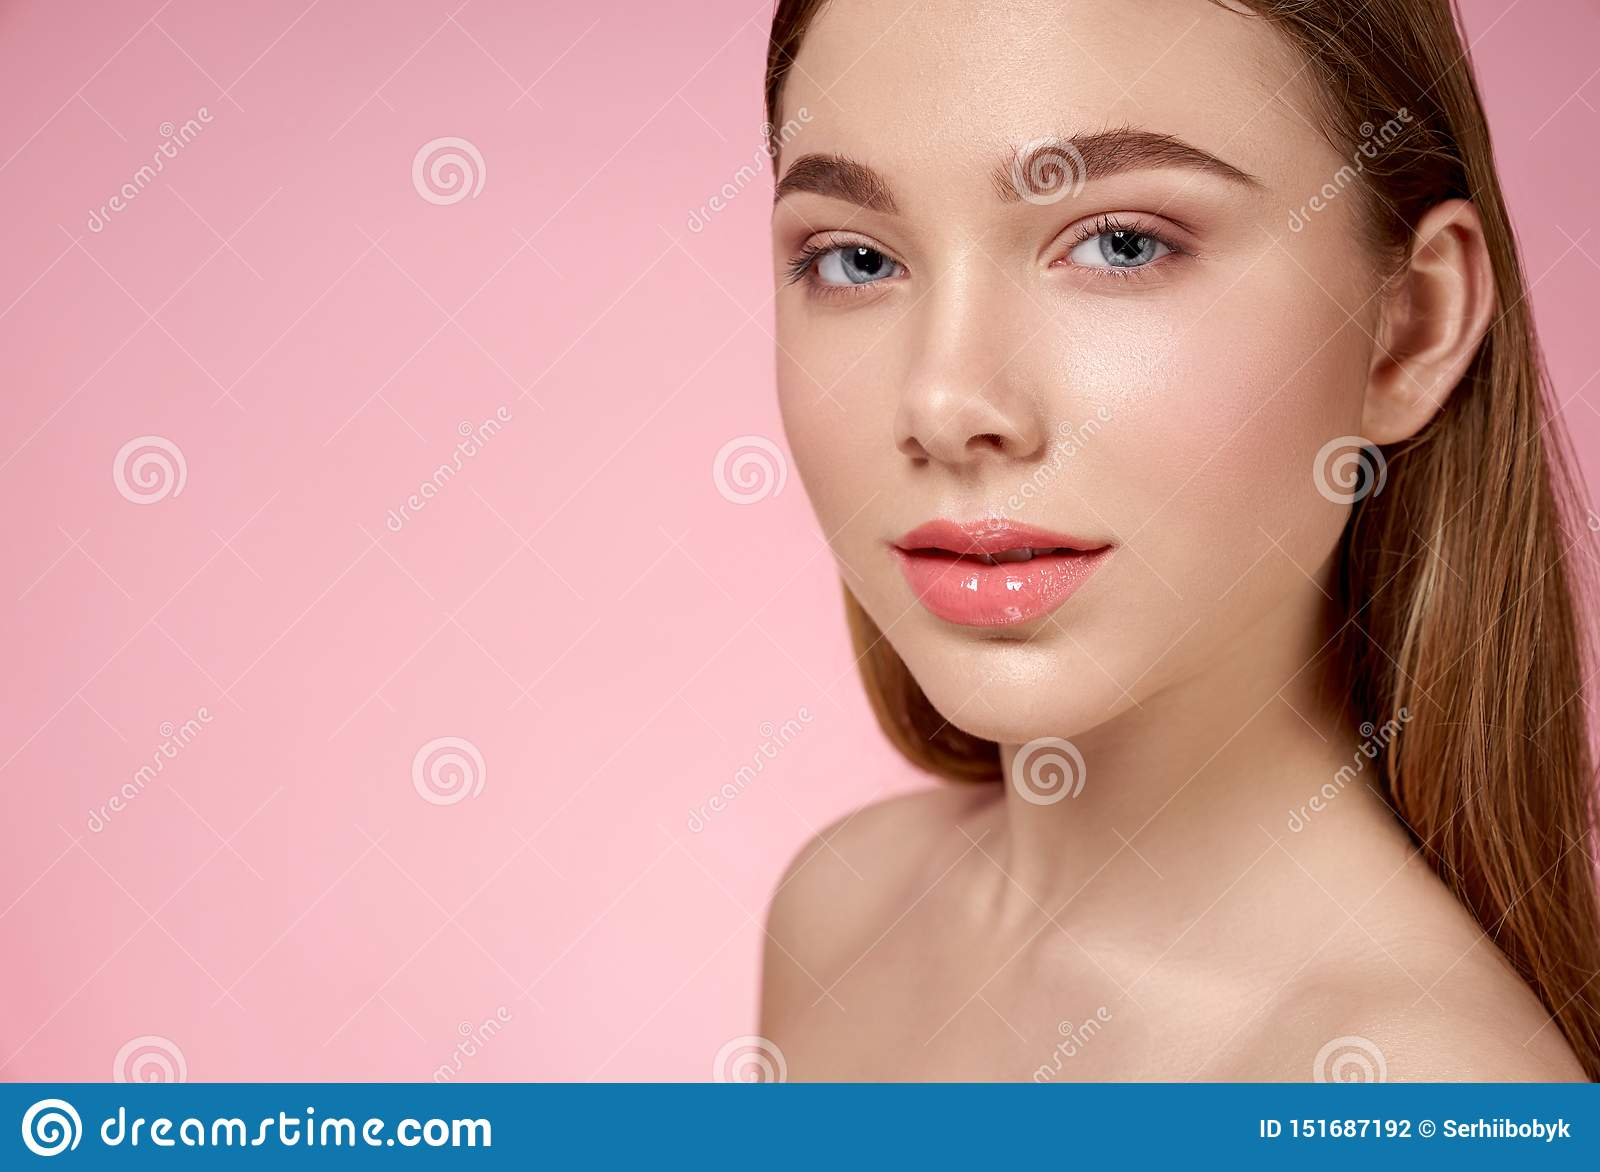 Pink lady sexy beuitiful girls nudes